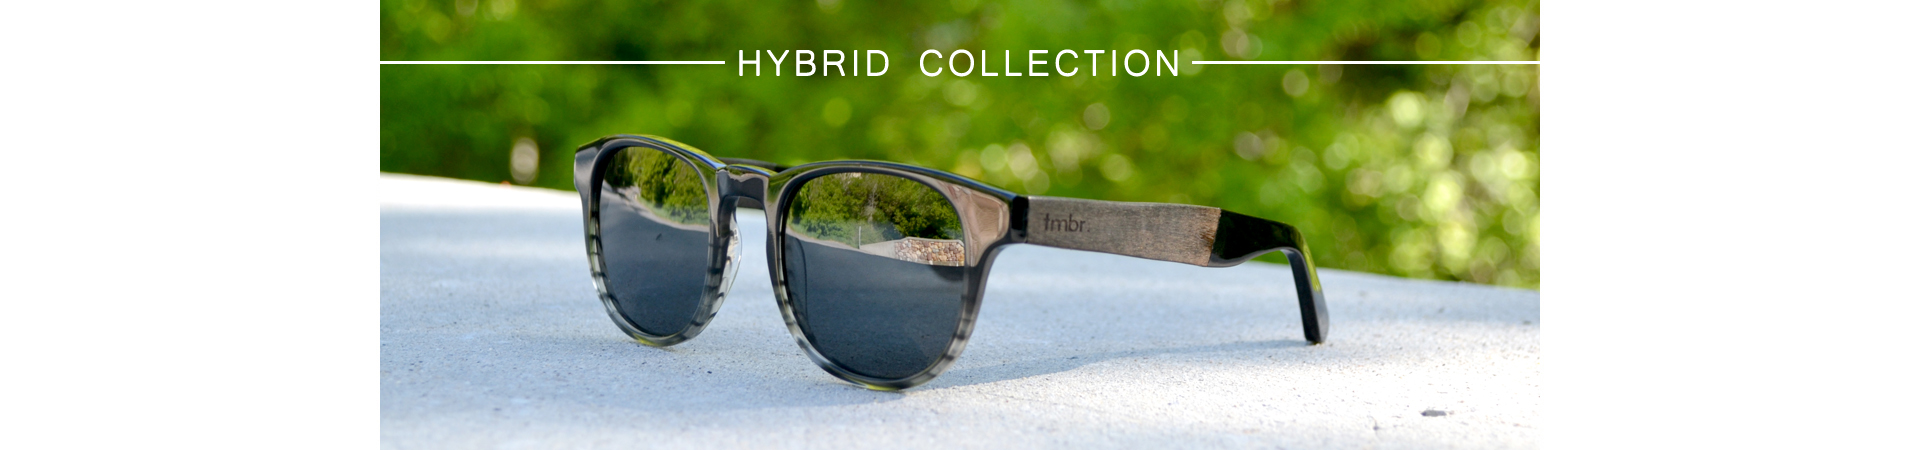 Hybrid Collection - Wood Sunglasses